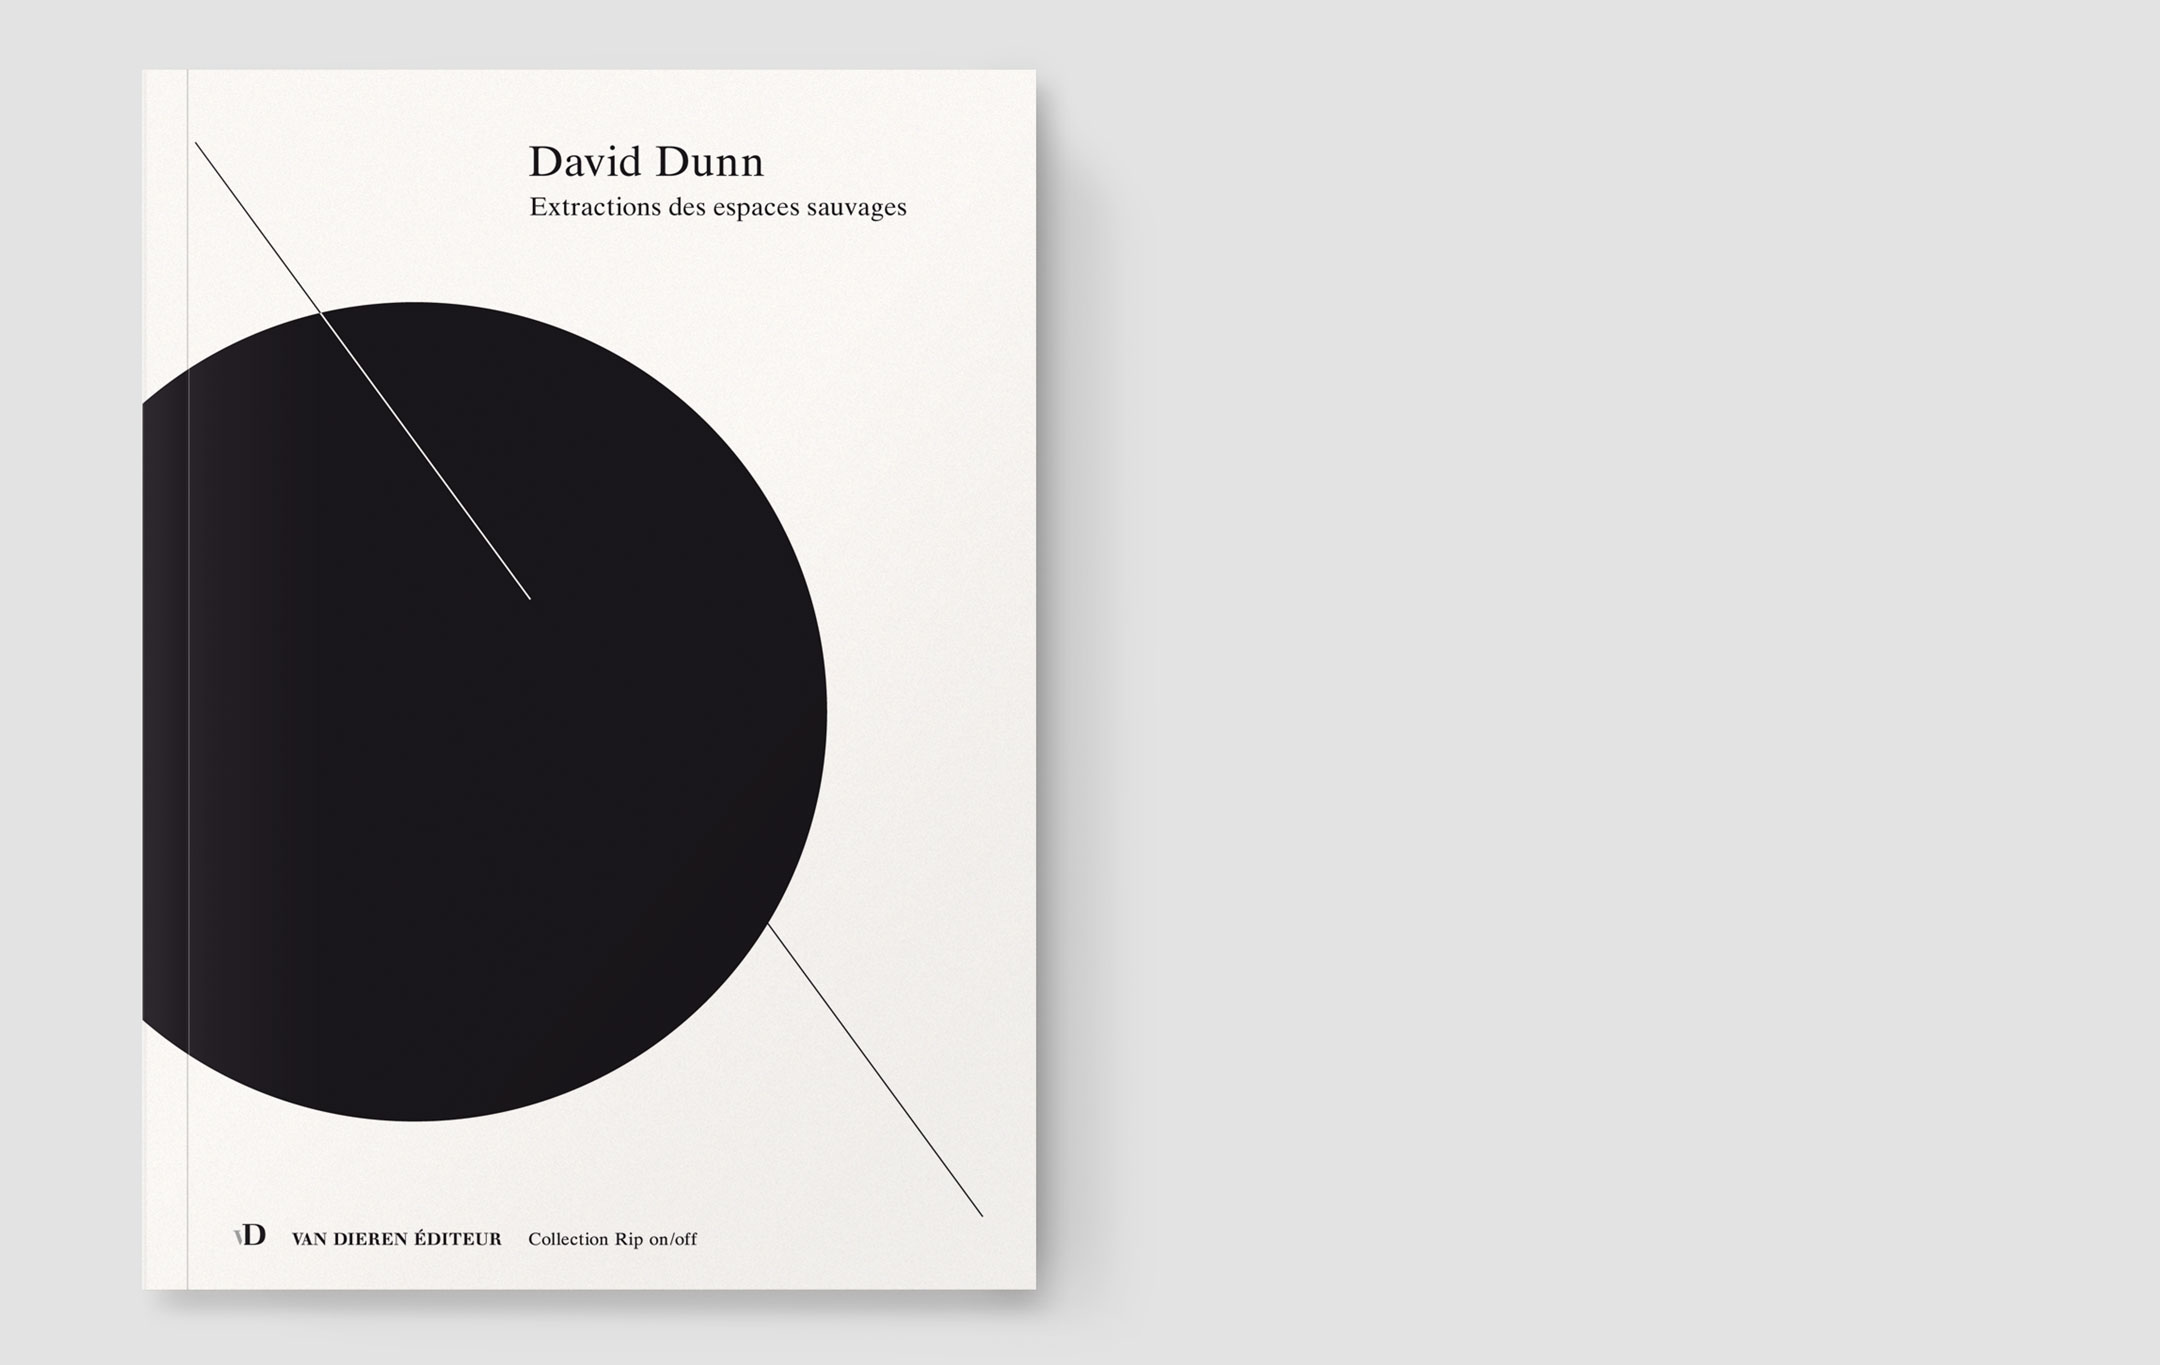 David Dunn, Extractions des espaces sauvages